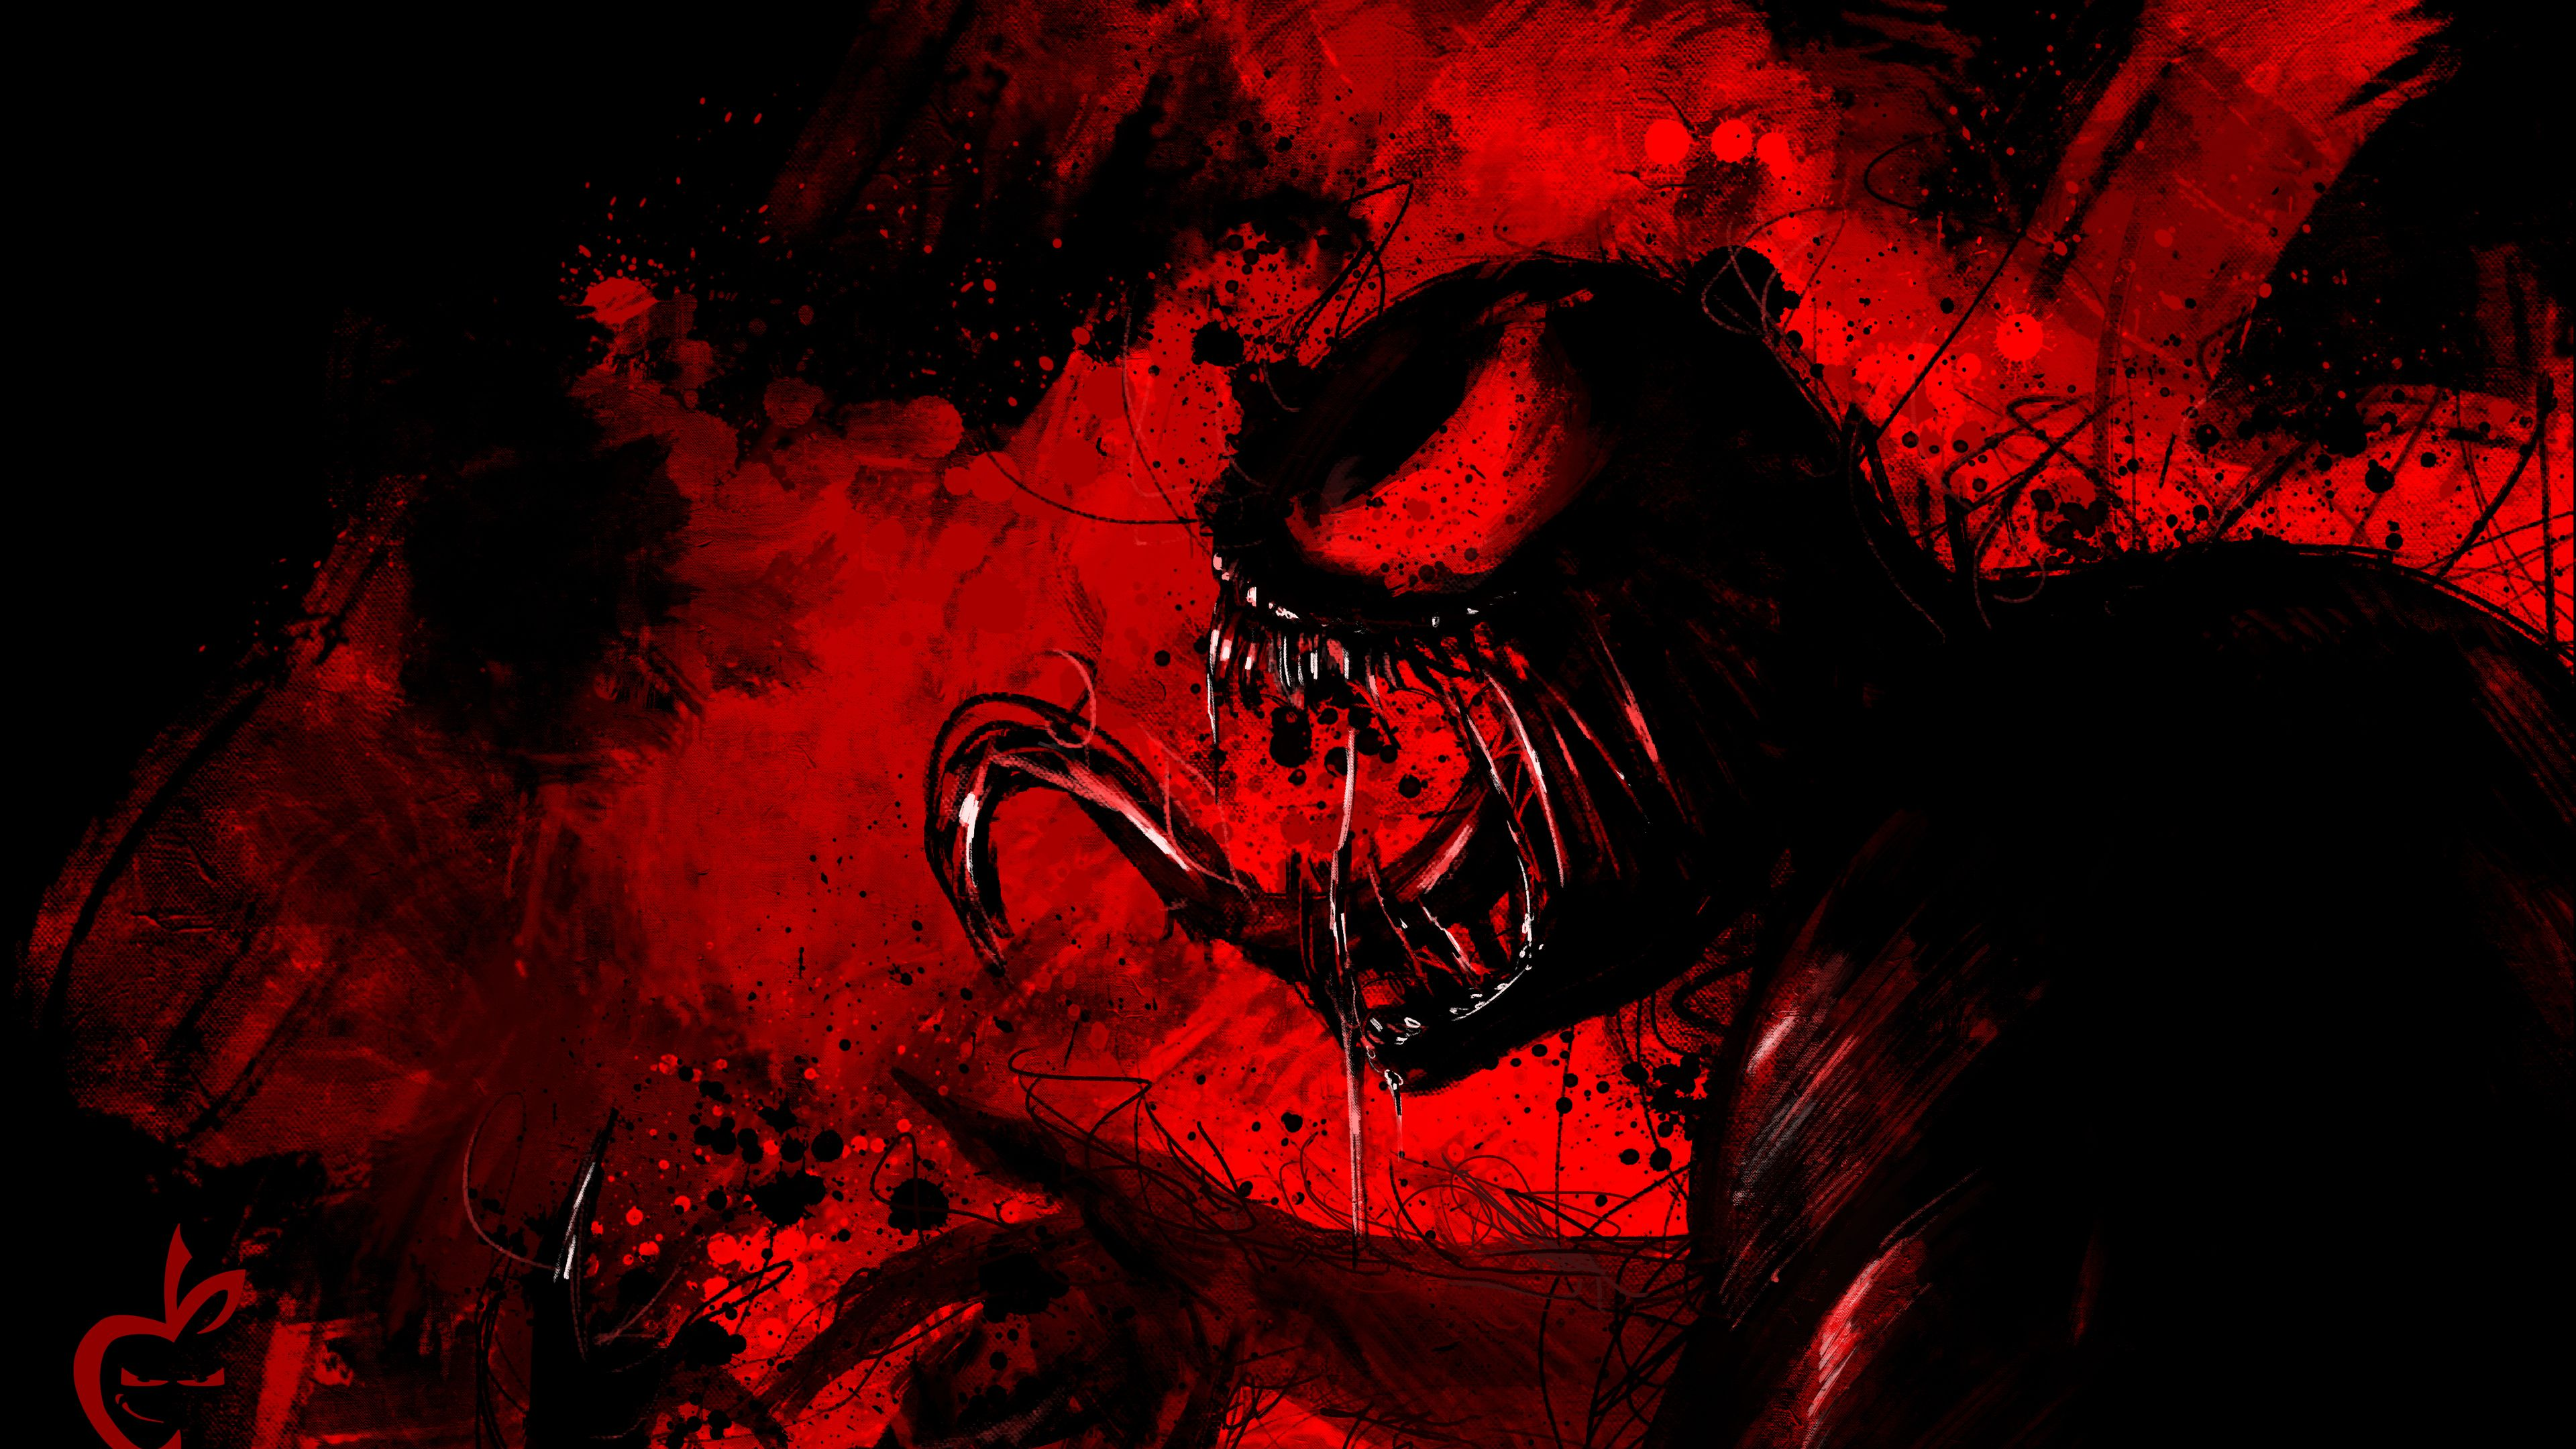 Carnage Artworks 4k Supervillain Wallpapers Superheroes Wallpapers Hd Wallpapers Digital Art Wallpapers Carnage Wallpapers A Art Wallpaper Carnage Artwork